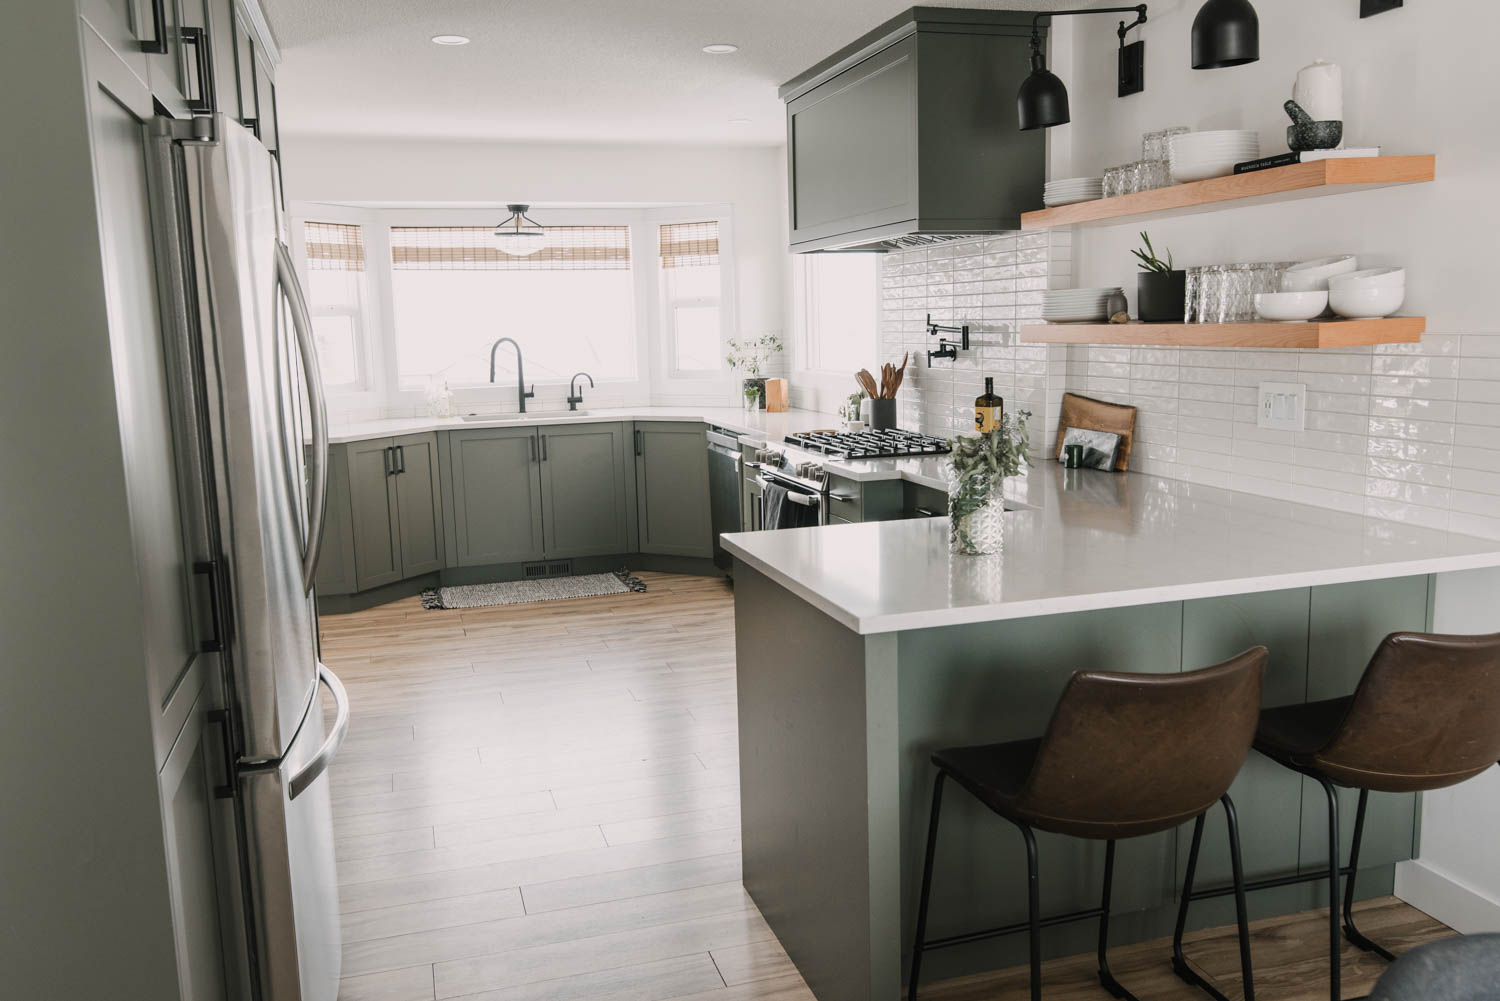 remodelled kitchen one year later